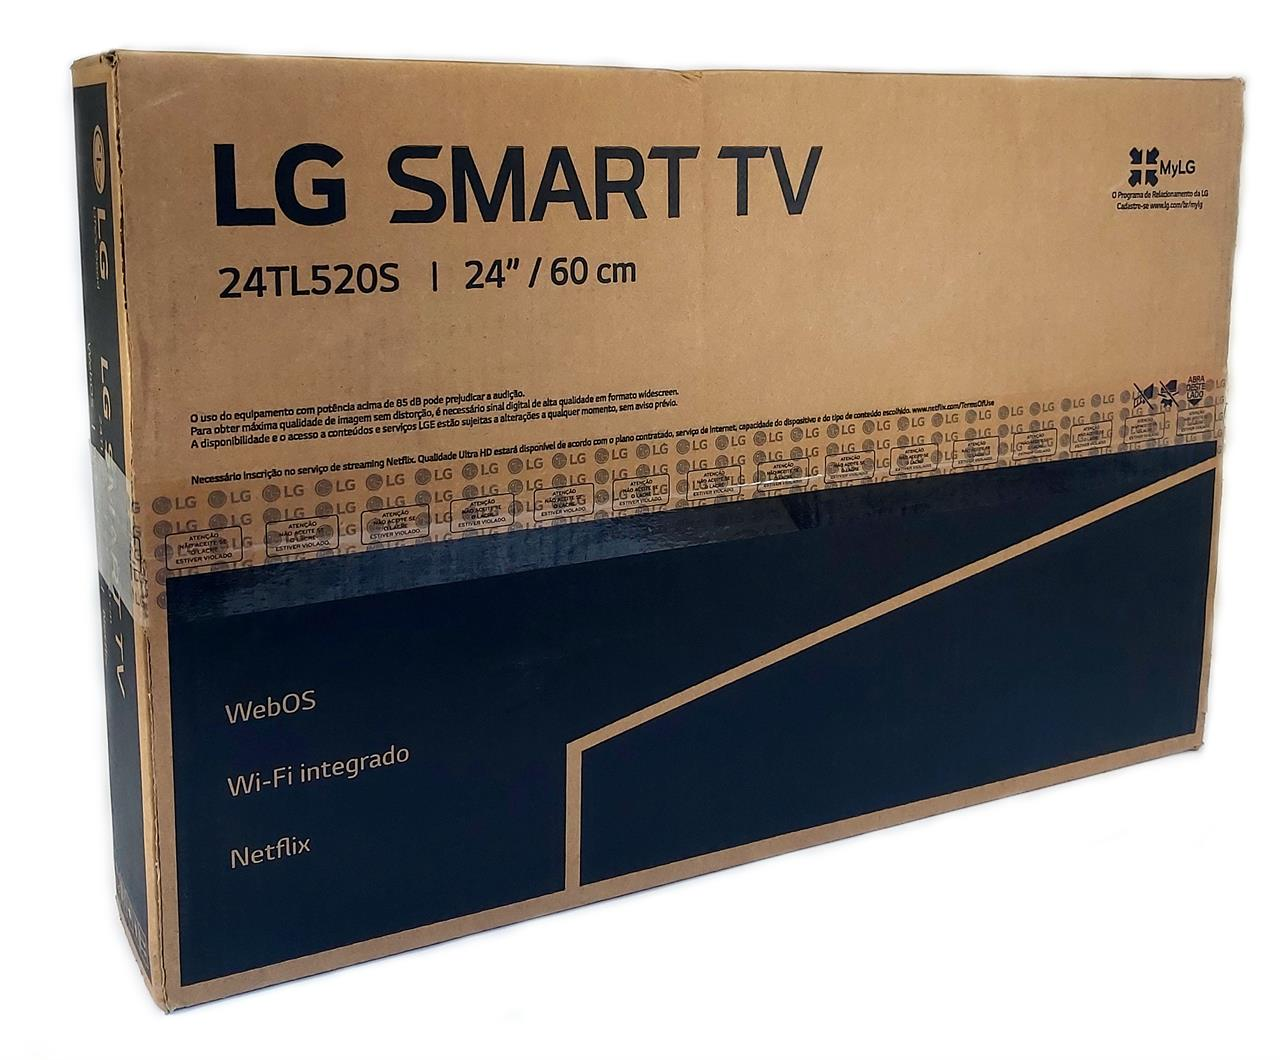 "Smart TV 24"" LED LG"